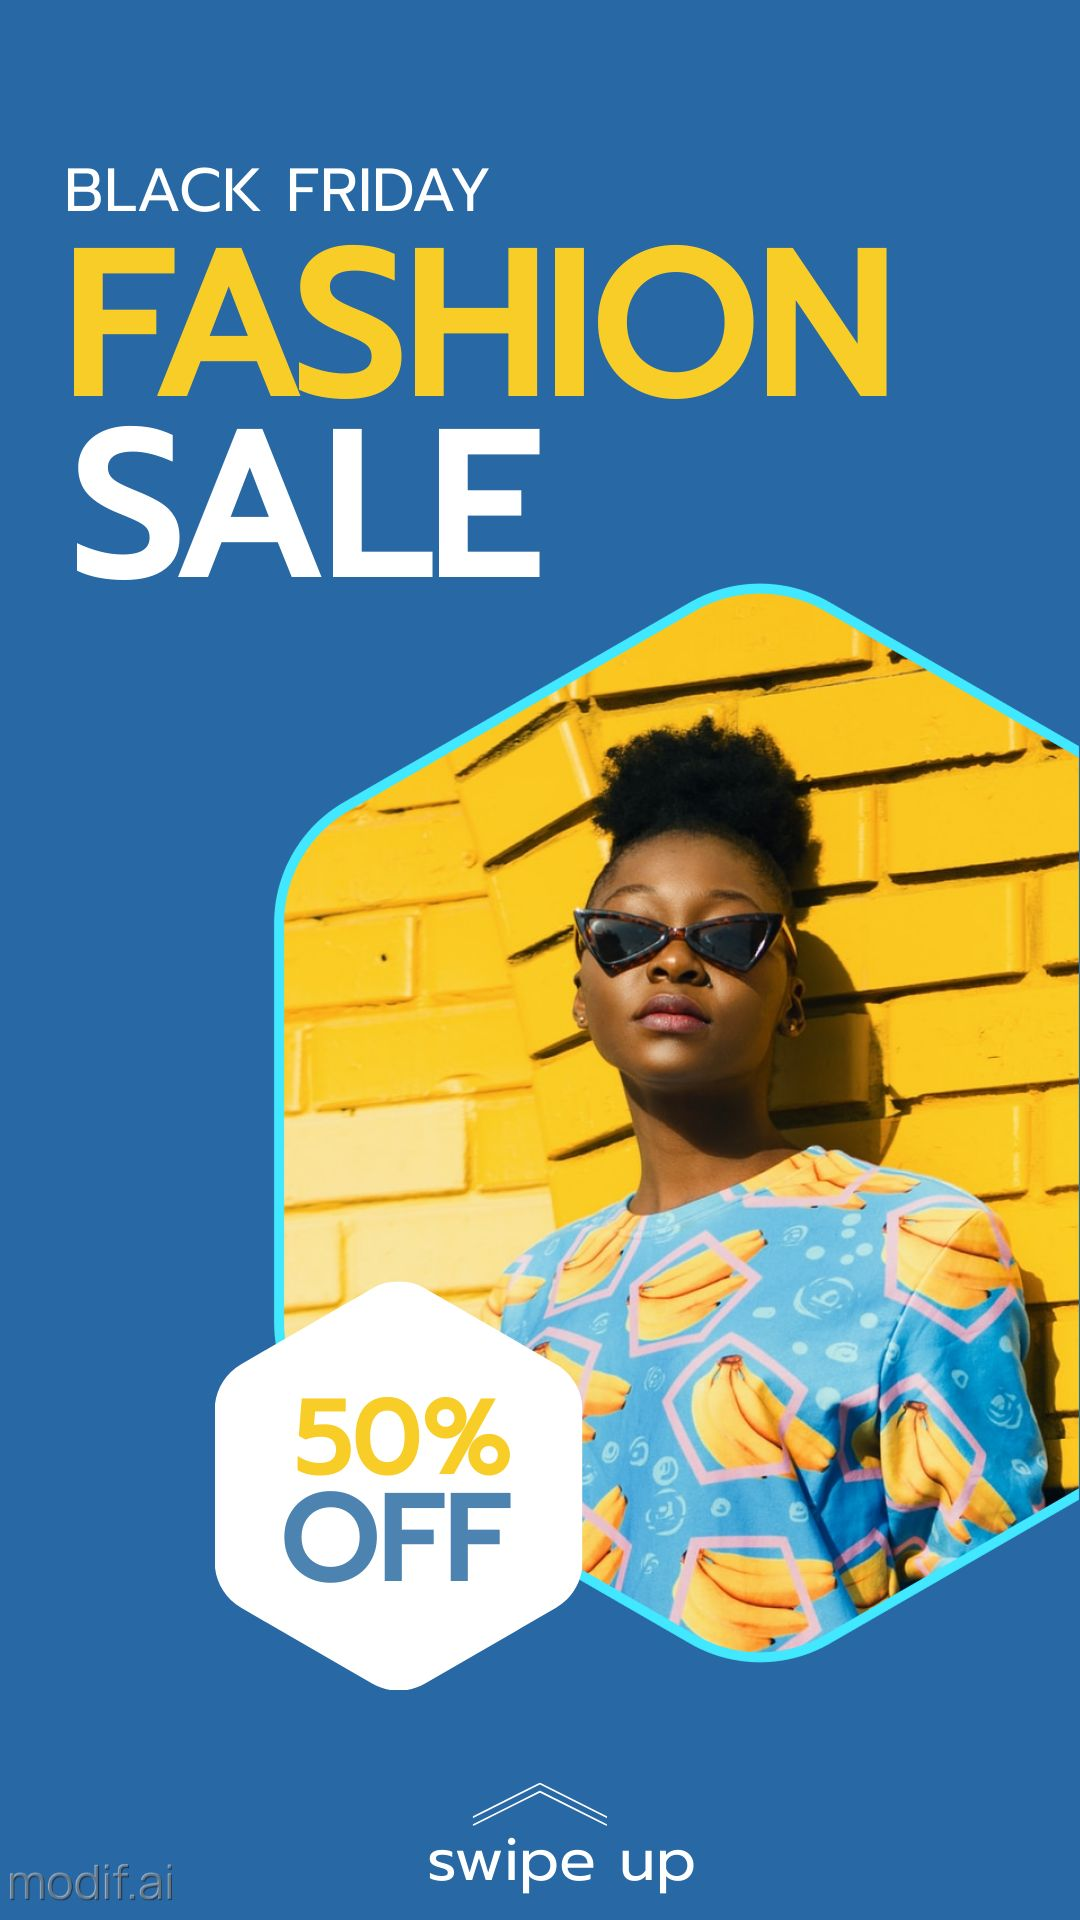 Fashion Sale Black Friday Instagram Story Template